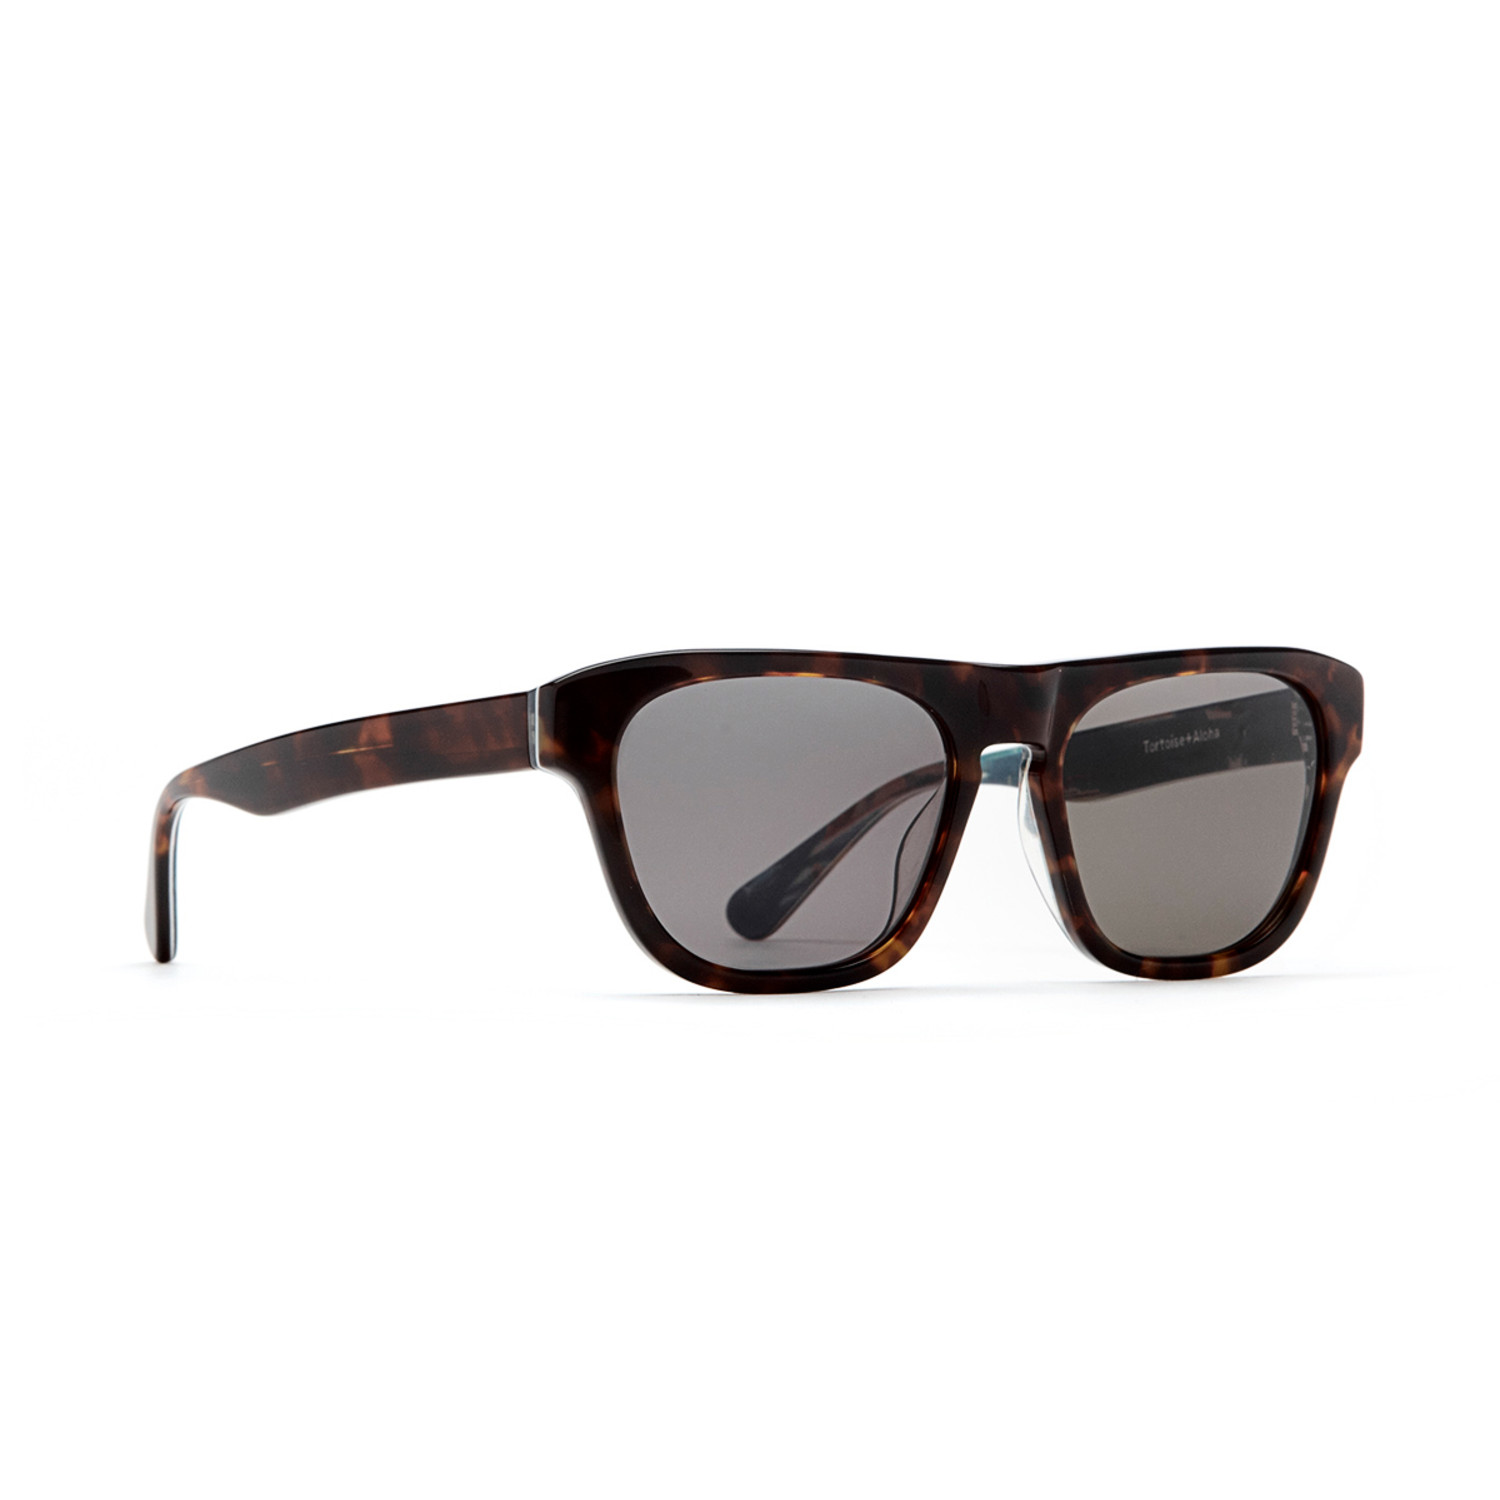 7a2056f876 Nevin (Black + Nomad Print) - Raen Sunglasses - Touch of Modern